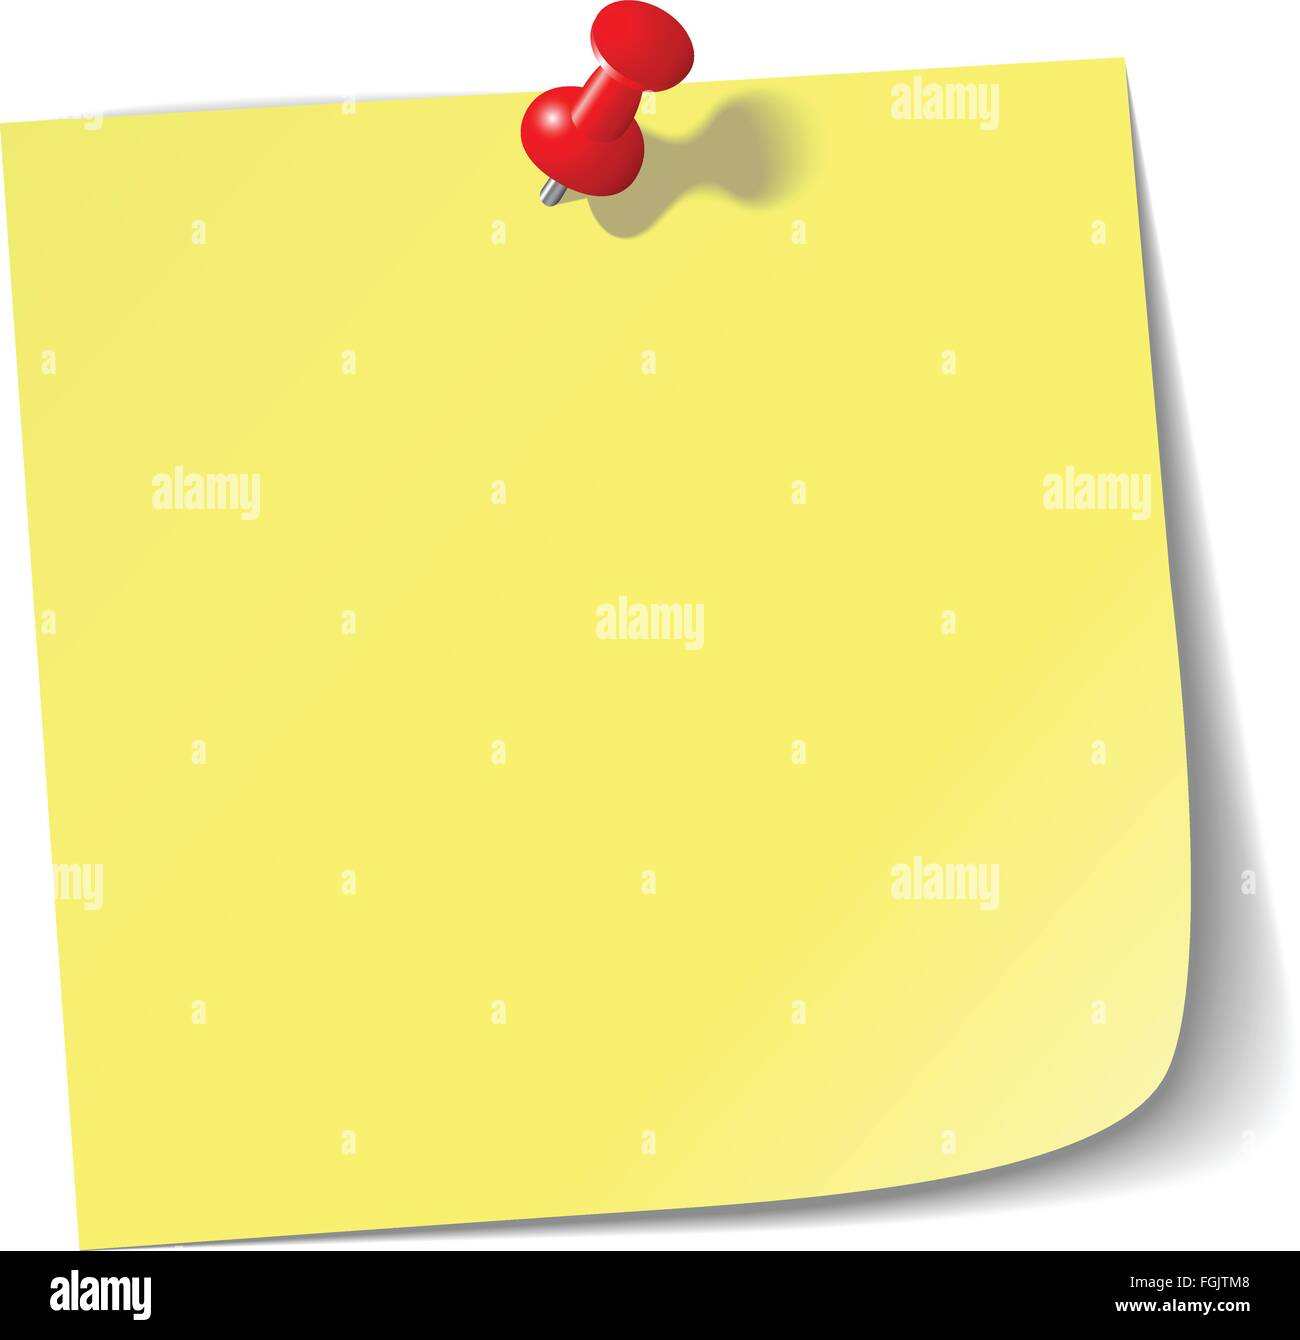 Yellow reminder note with red pin. - Stock Image